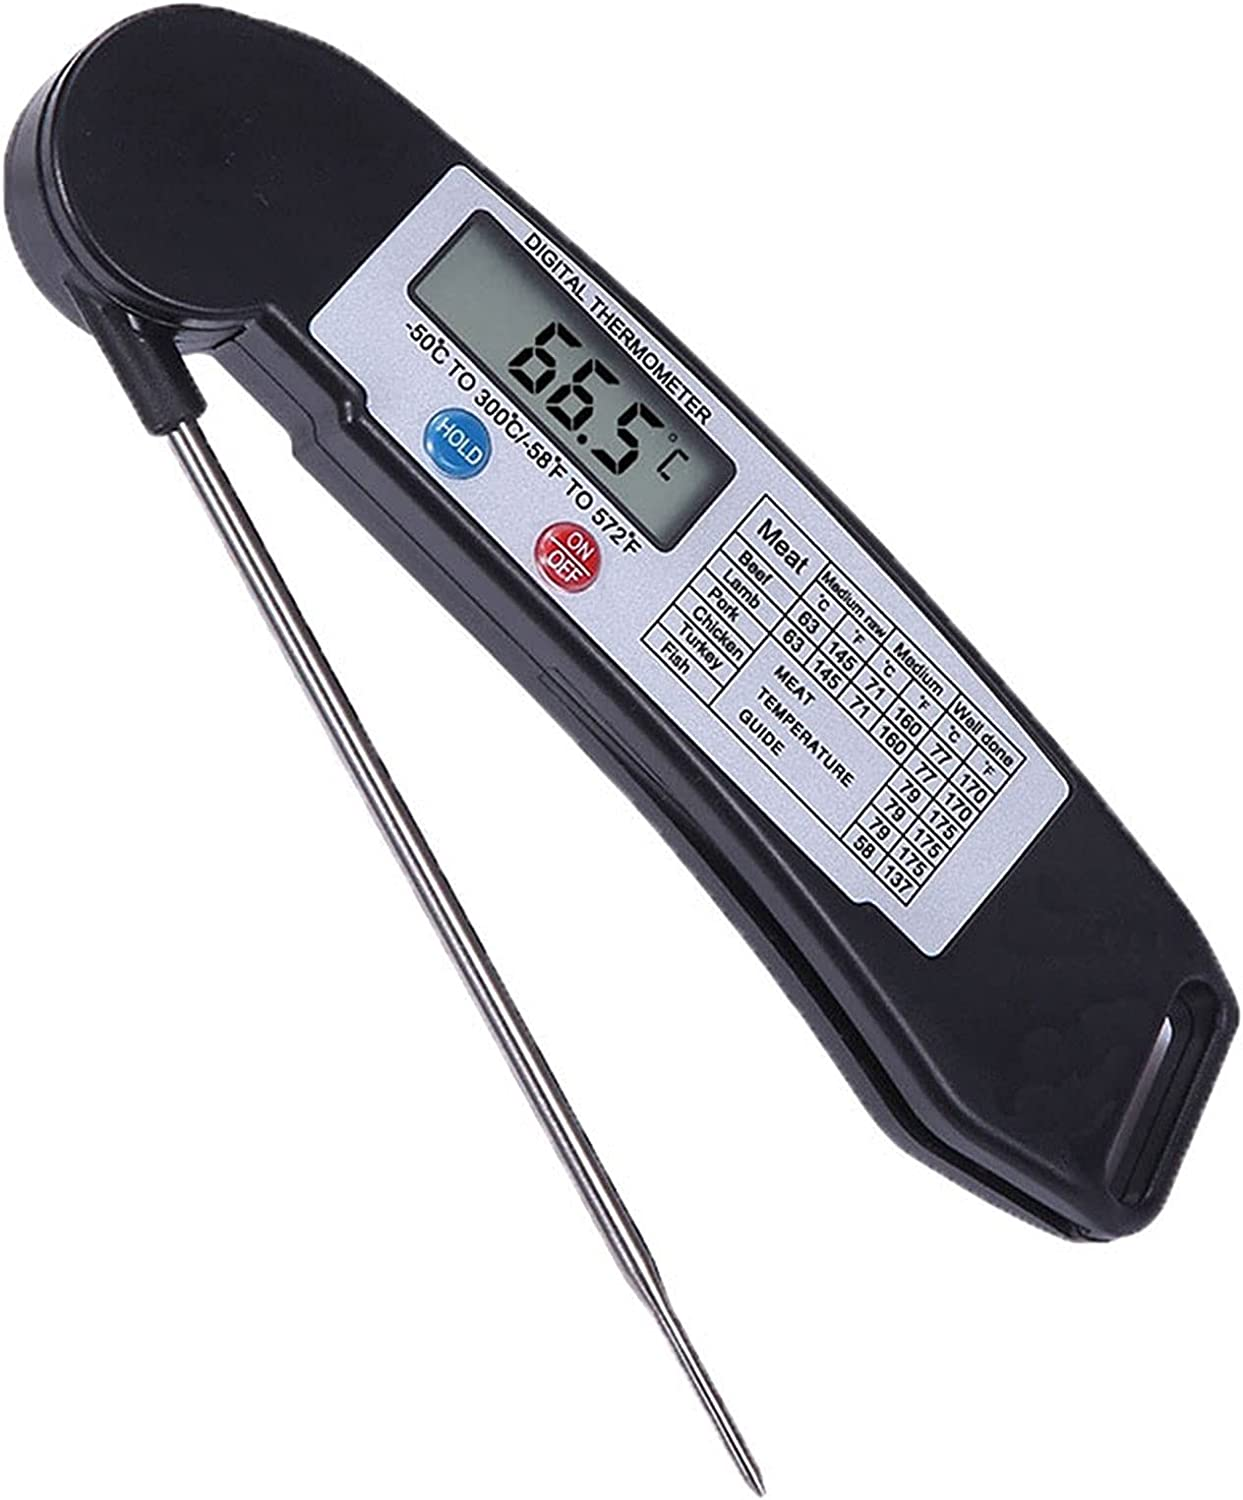 Odekai Instant Read Meat Max 69% OFF for Food Thermometer Boston Mall Cooki